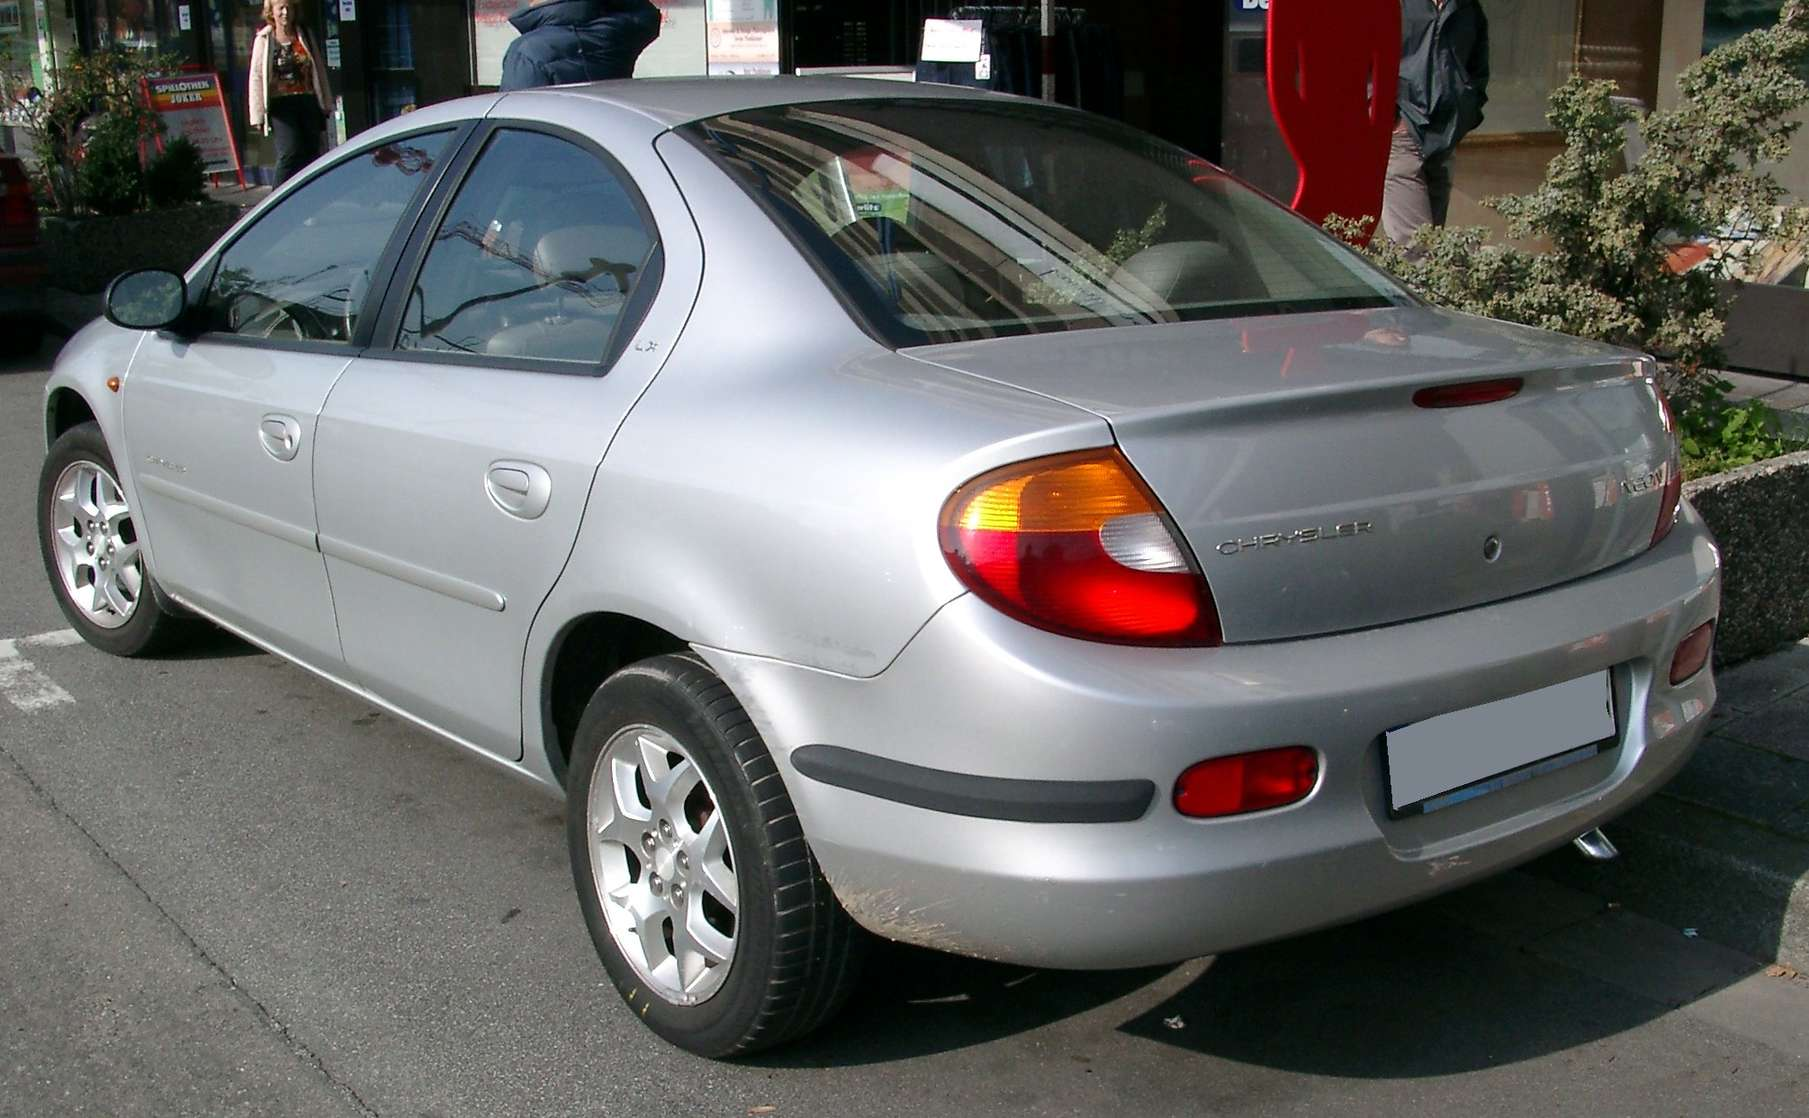 Chrysler Neon #8043126